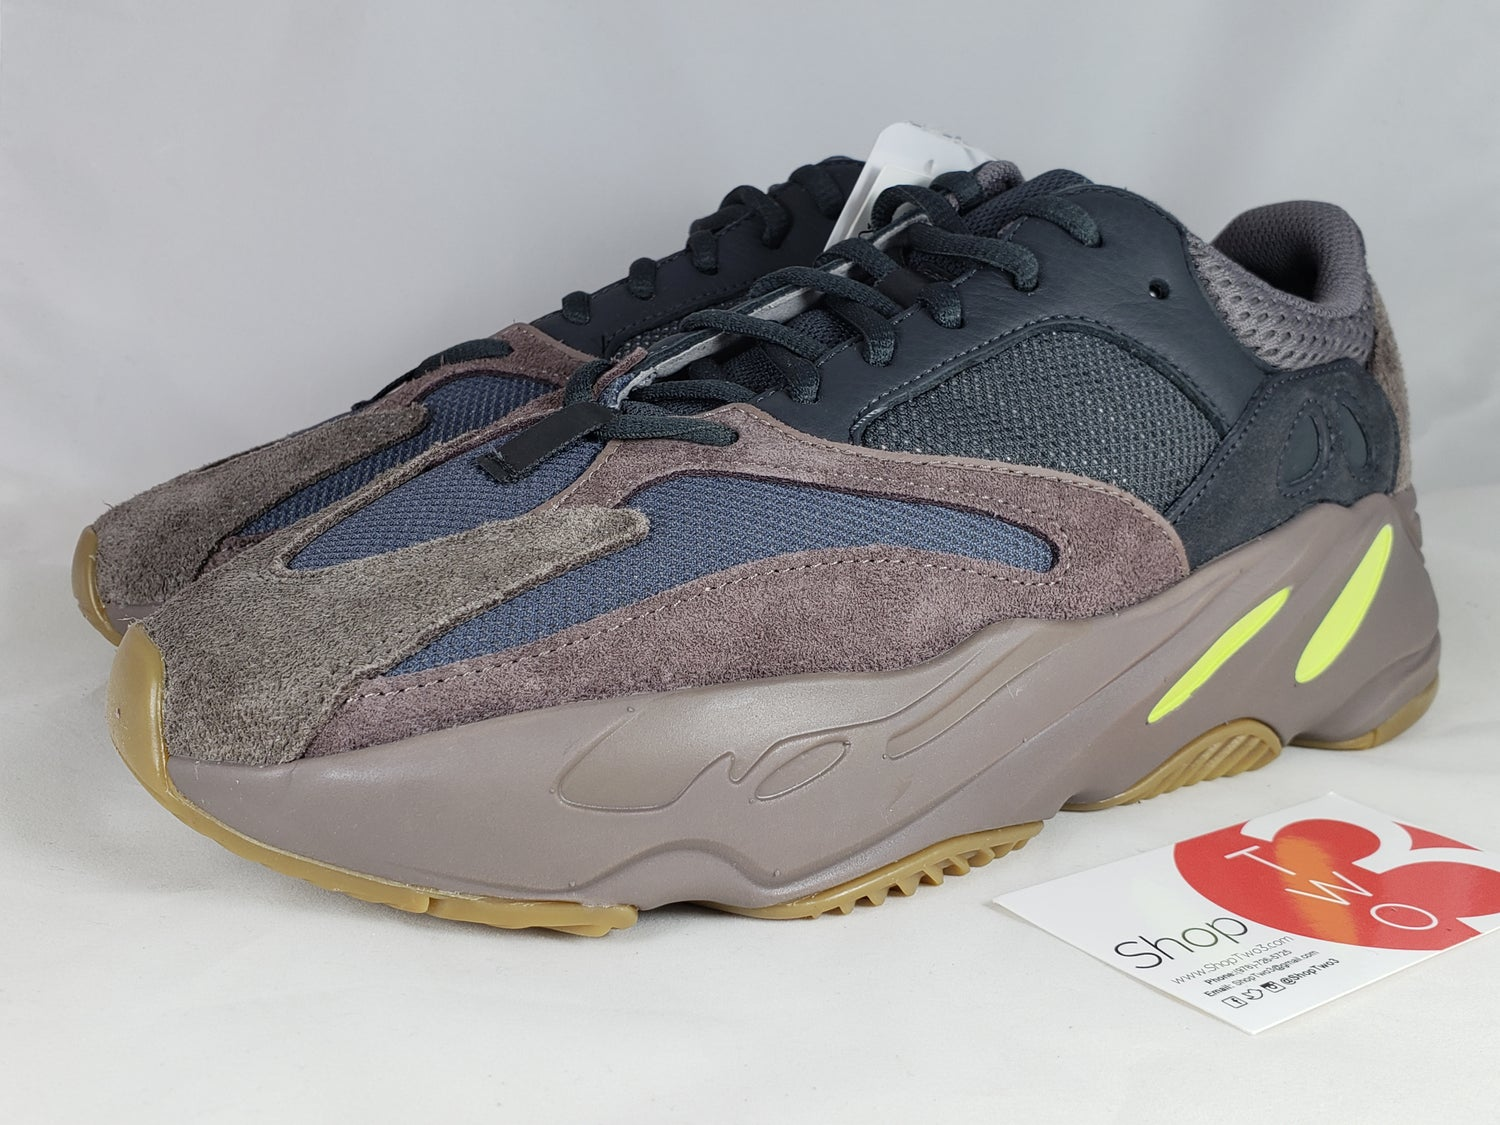 low priced a2c84 49329 Image of Adidas Yeezy Boost 700 Mauve